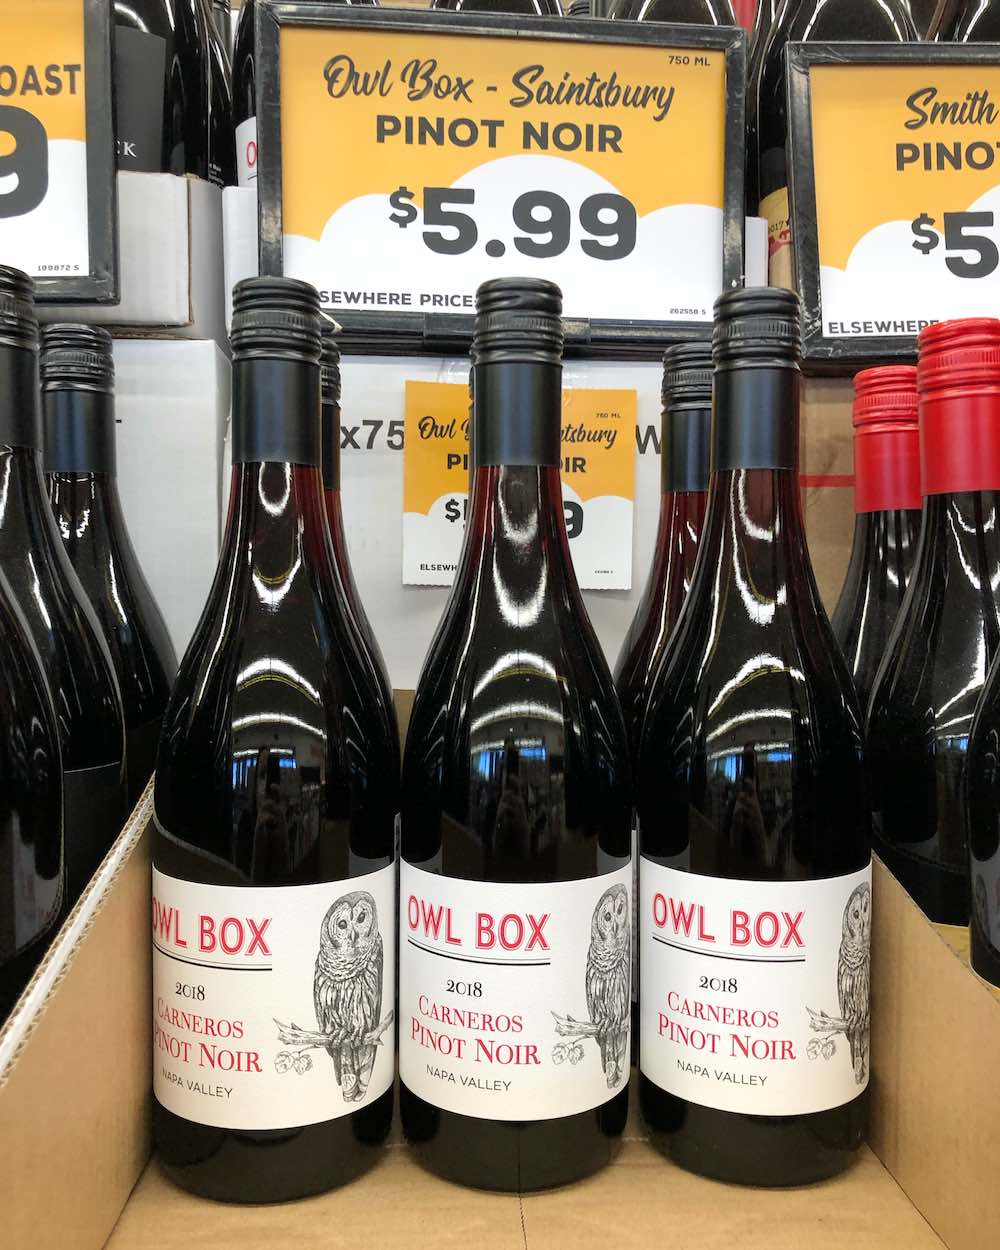 Grocery Outlet Wine - Owl Box 2018 Napa Valley Carneros Pinot Noir